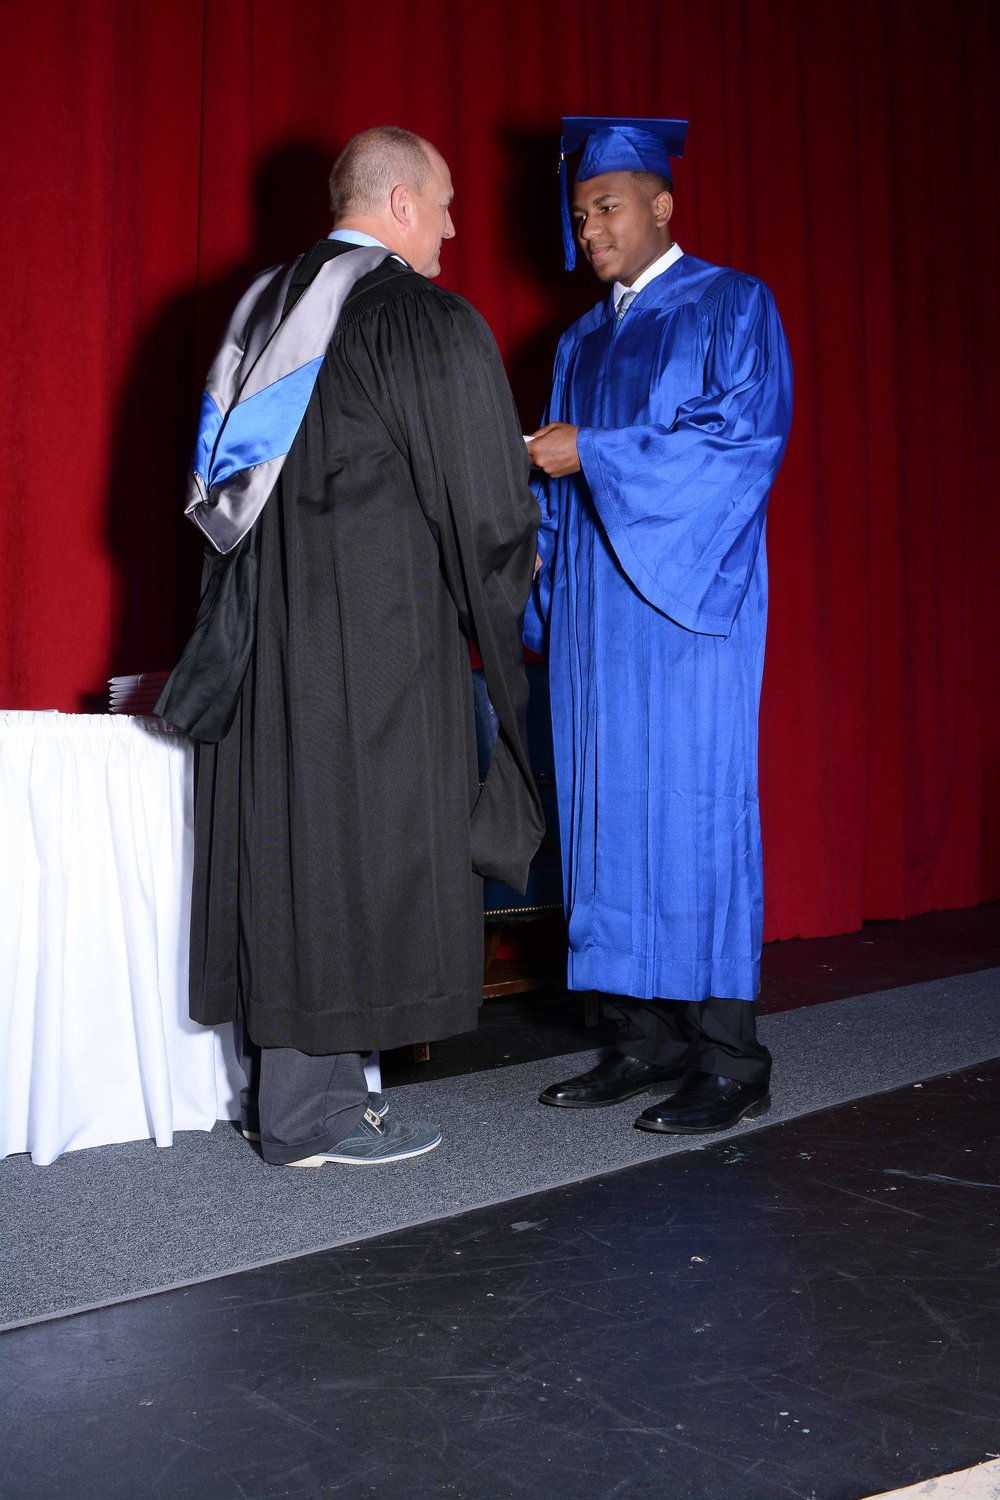 May14 Commencement165.jpg